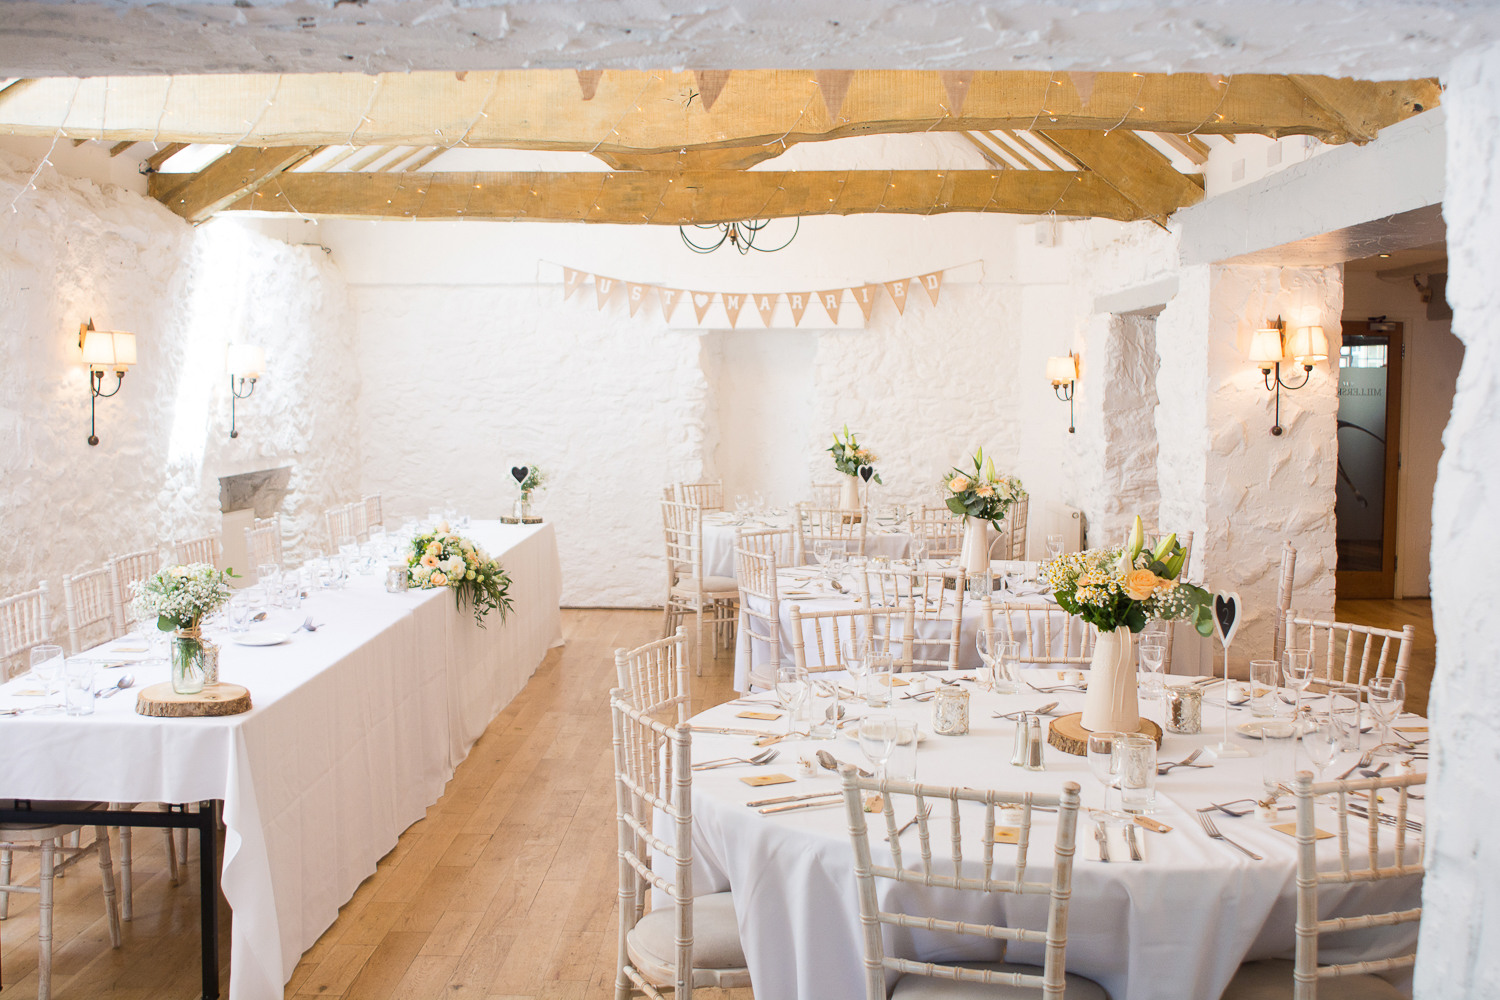 Exposed beams and tables set for the wedding breakfast at the wonderful Bickley Mill Wedding Venue in Devon